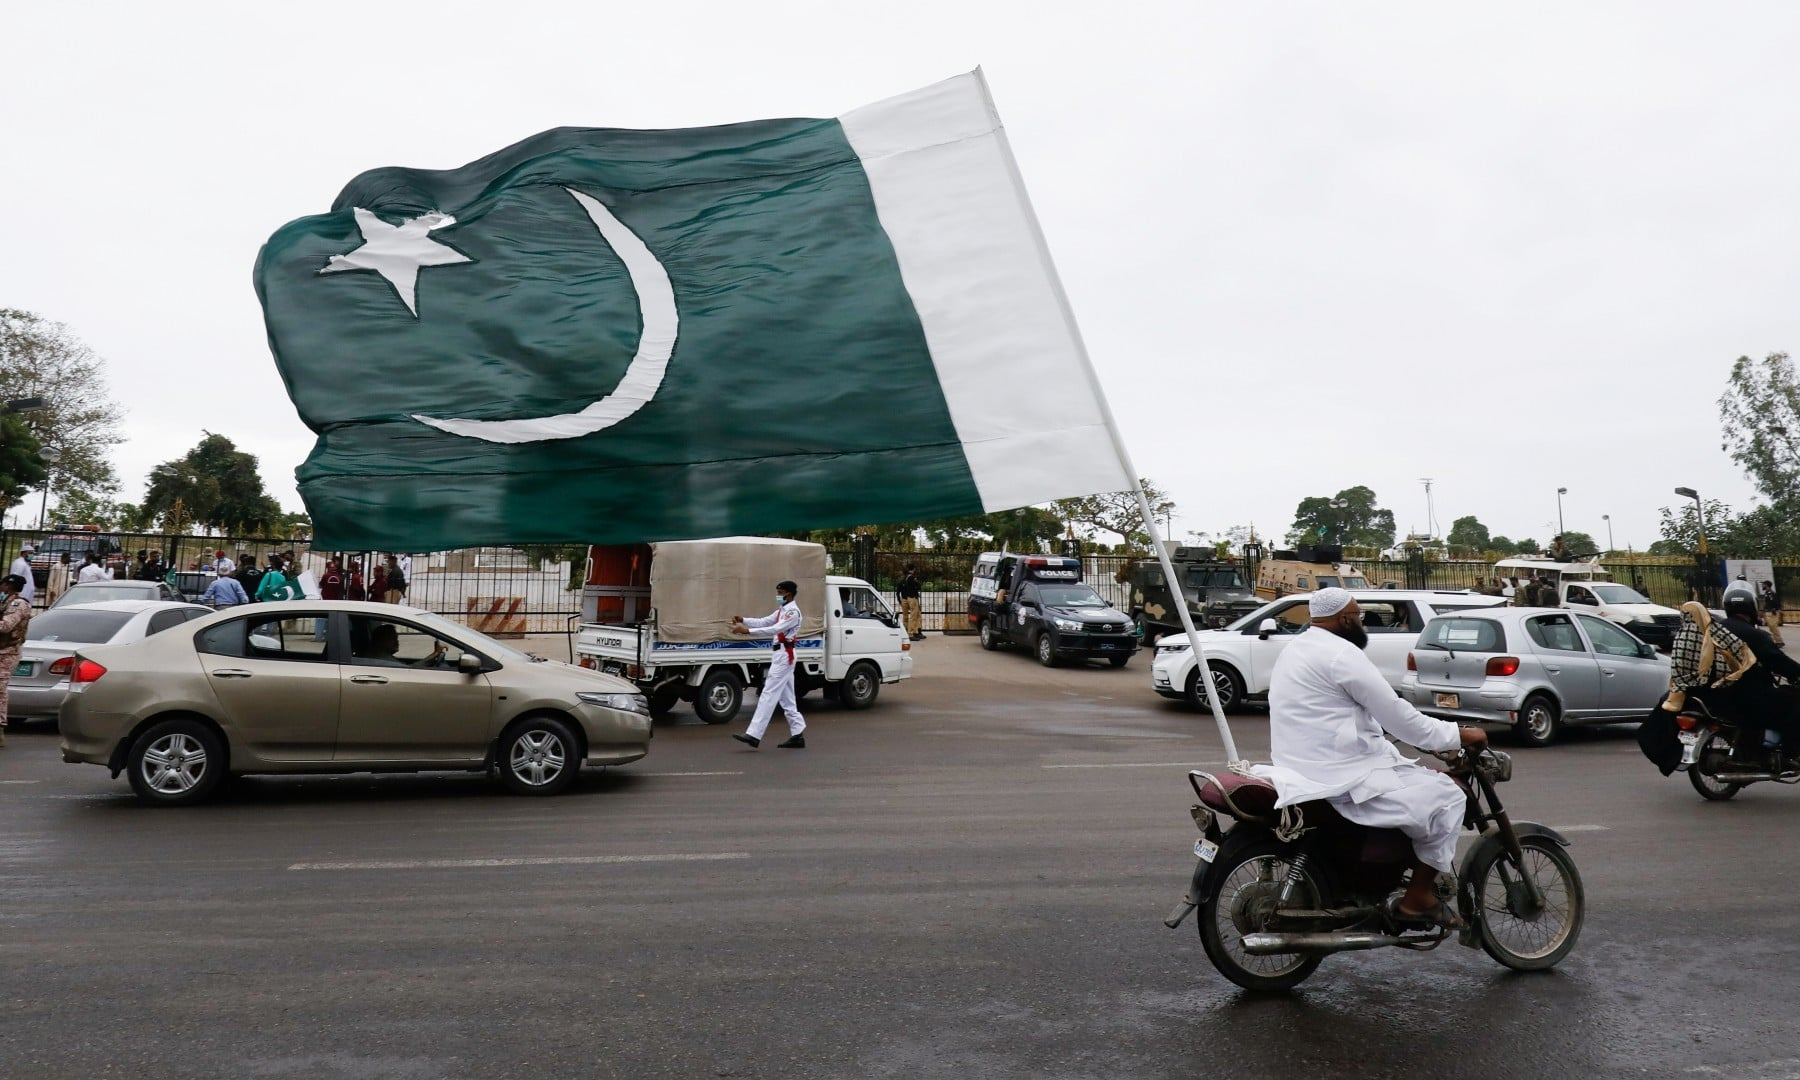 A man with a national flag on his bike rides during the celebrations of Independence Day in Karachi on August 14. — Reuters